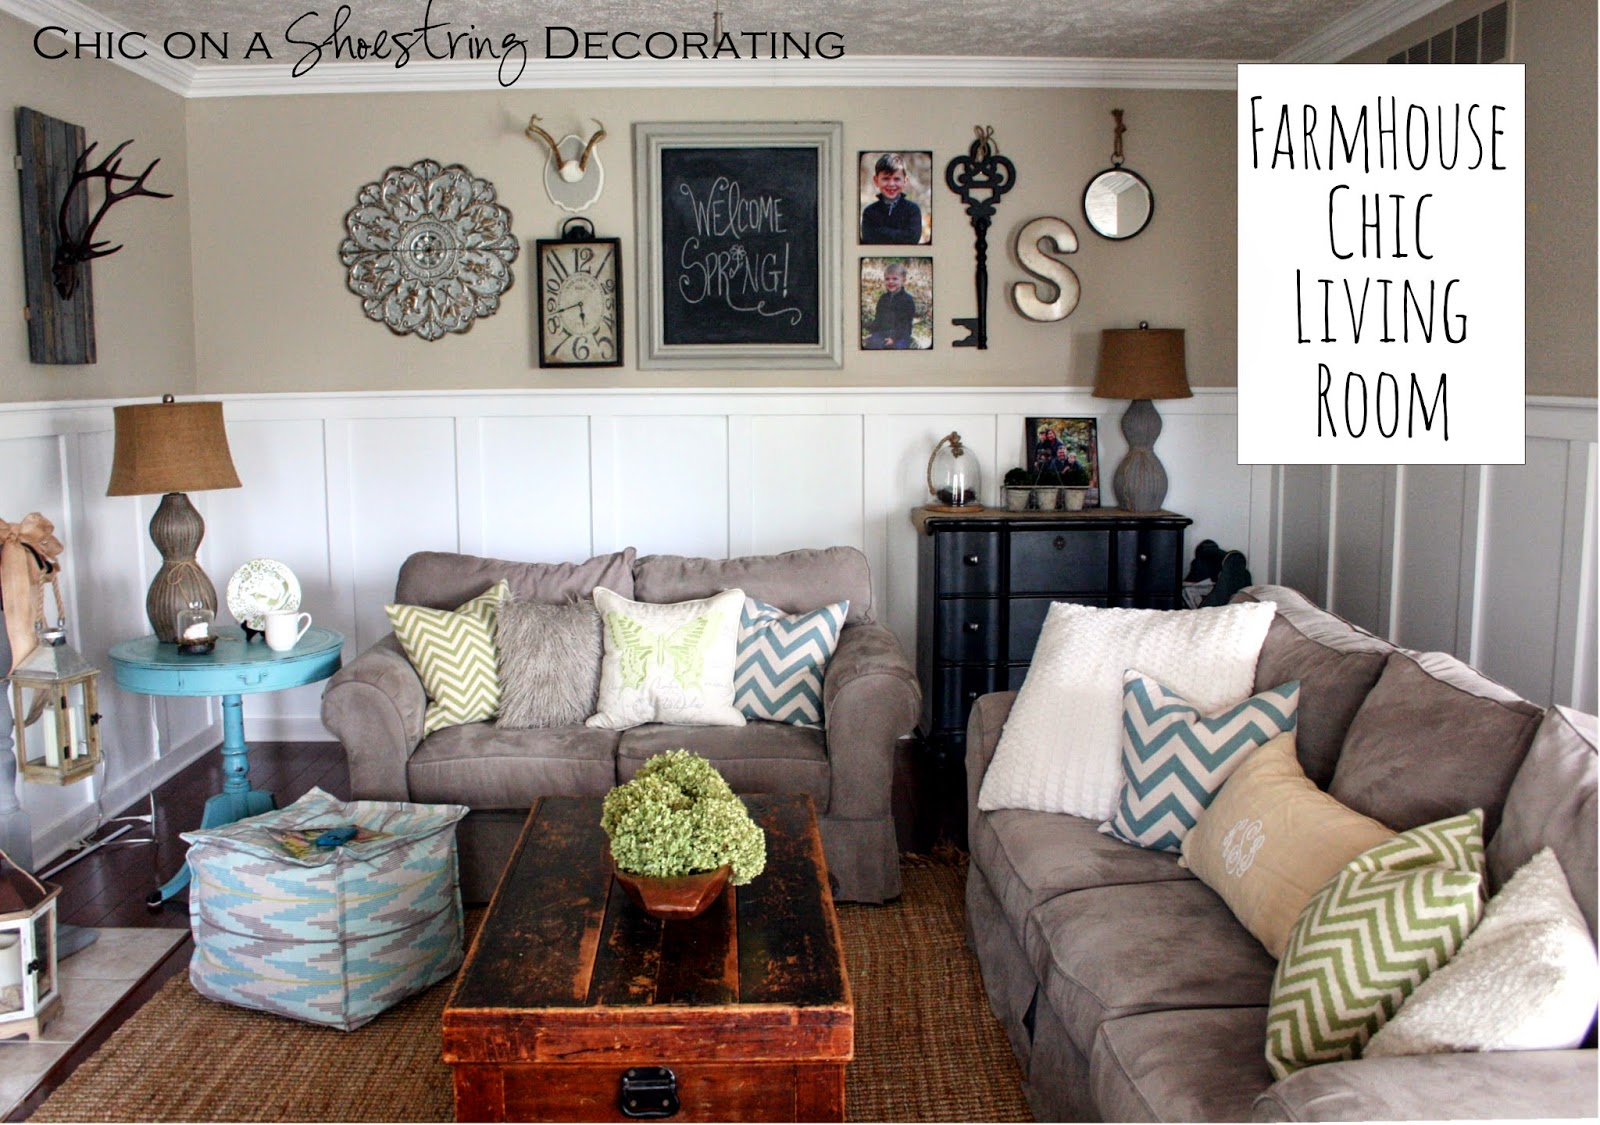 chic on a shoestring decorating: my farmhouse chic living room reveal